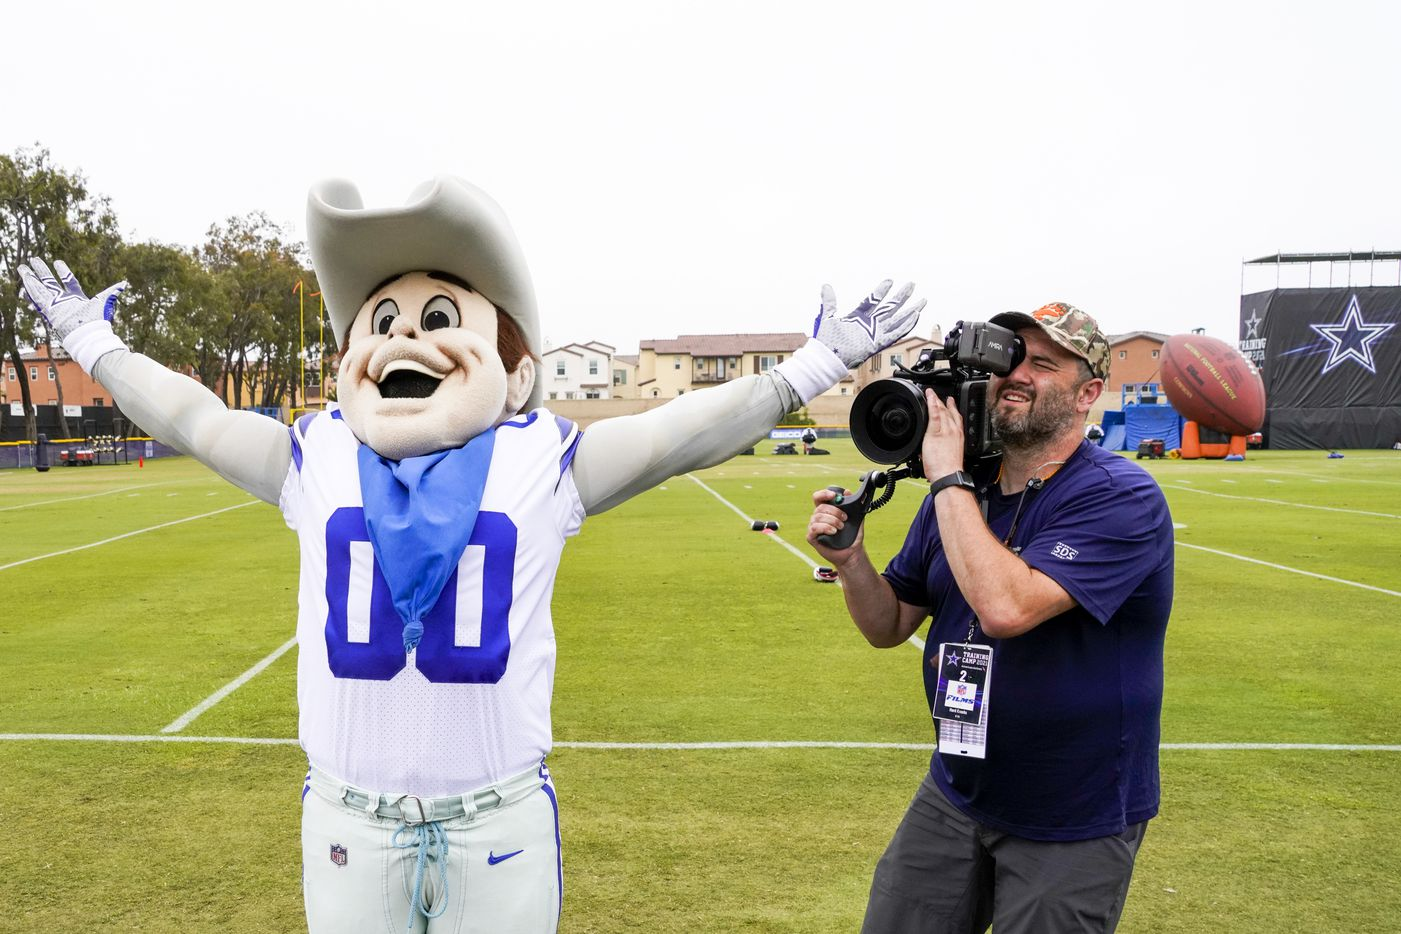 A camera operator for HBO's Hard Knocks captures Dallas Cowboys mascot Rowdy gesturing to the fans during opening ceremonies before a practice at training camp on Saturday, July 24, 2021, in Oxnard, Calif.